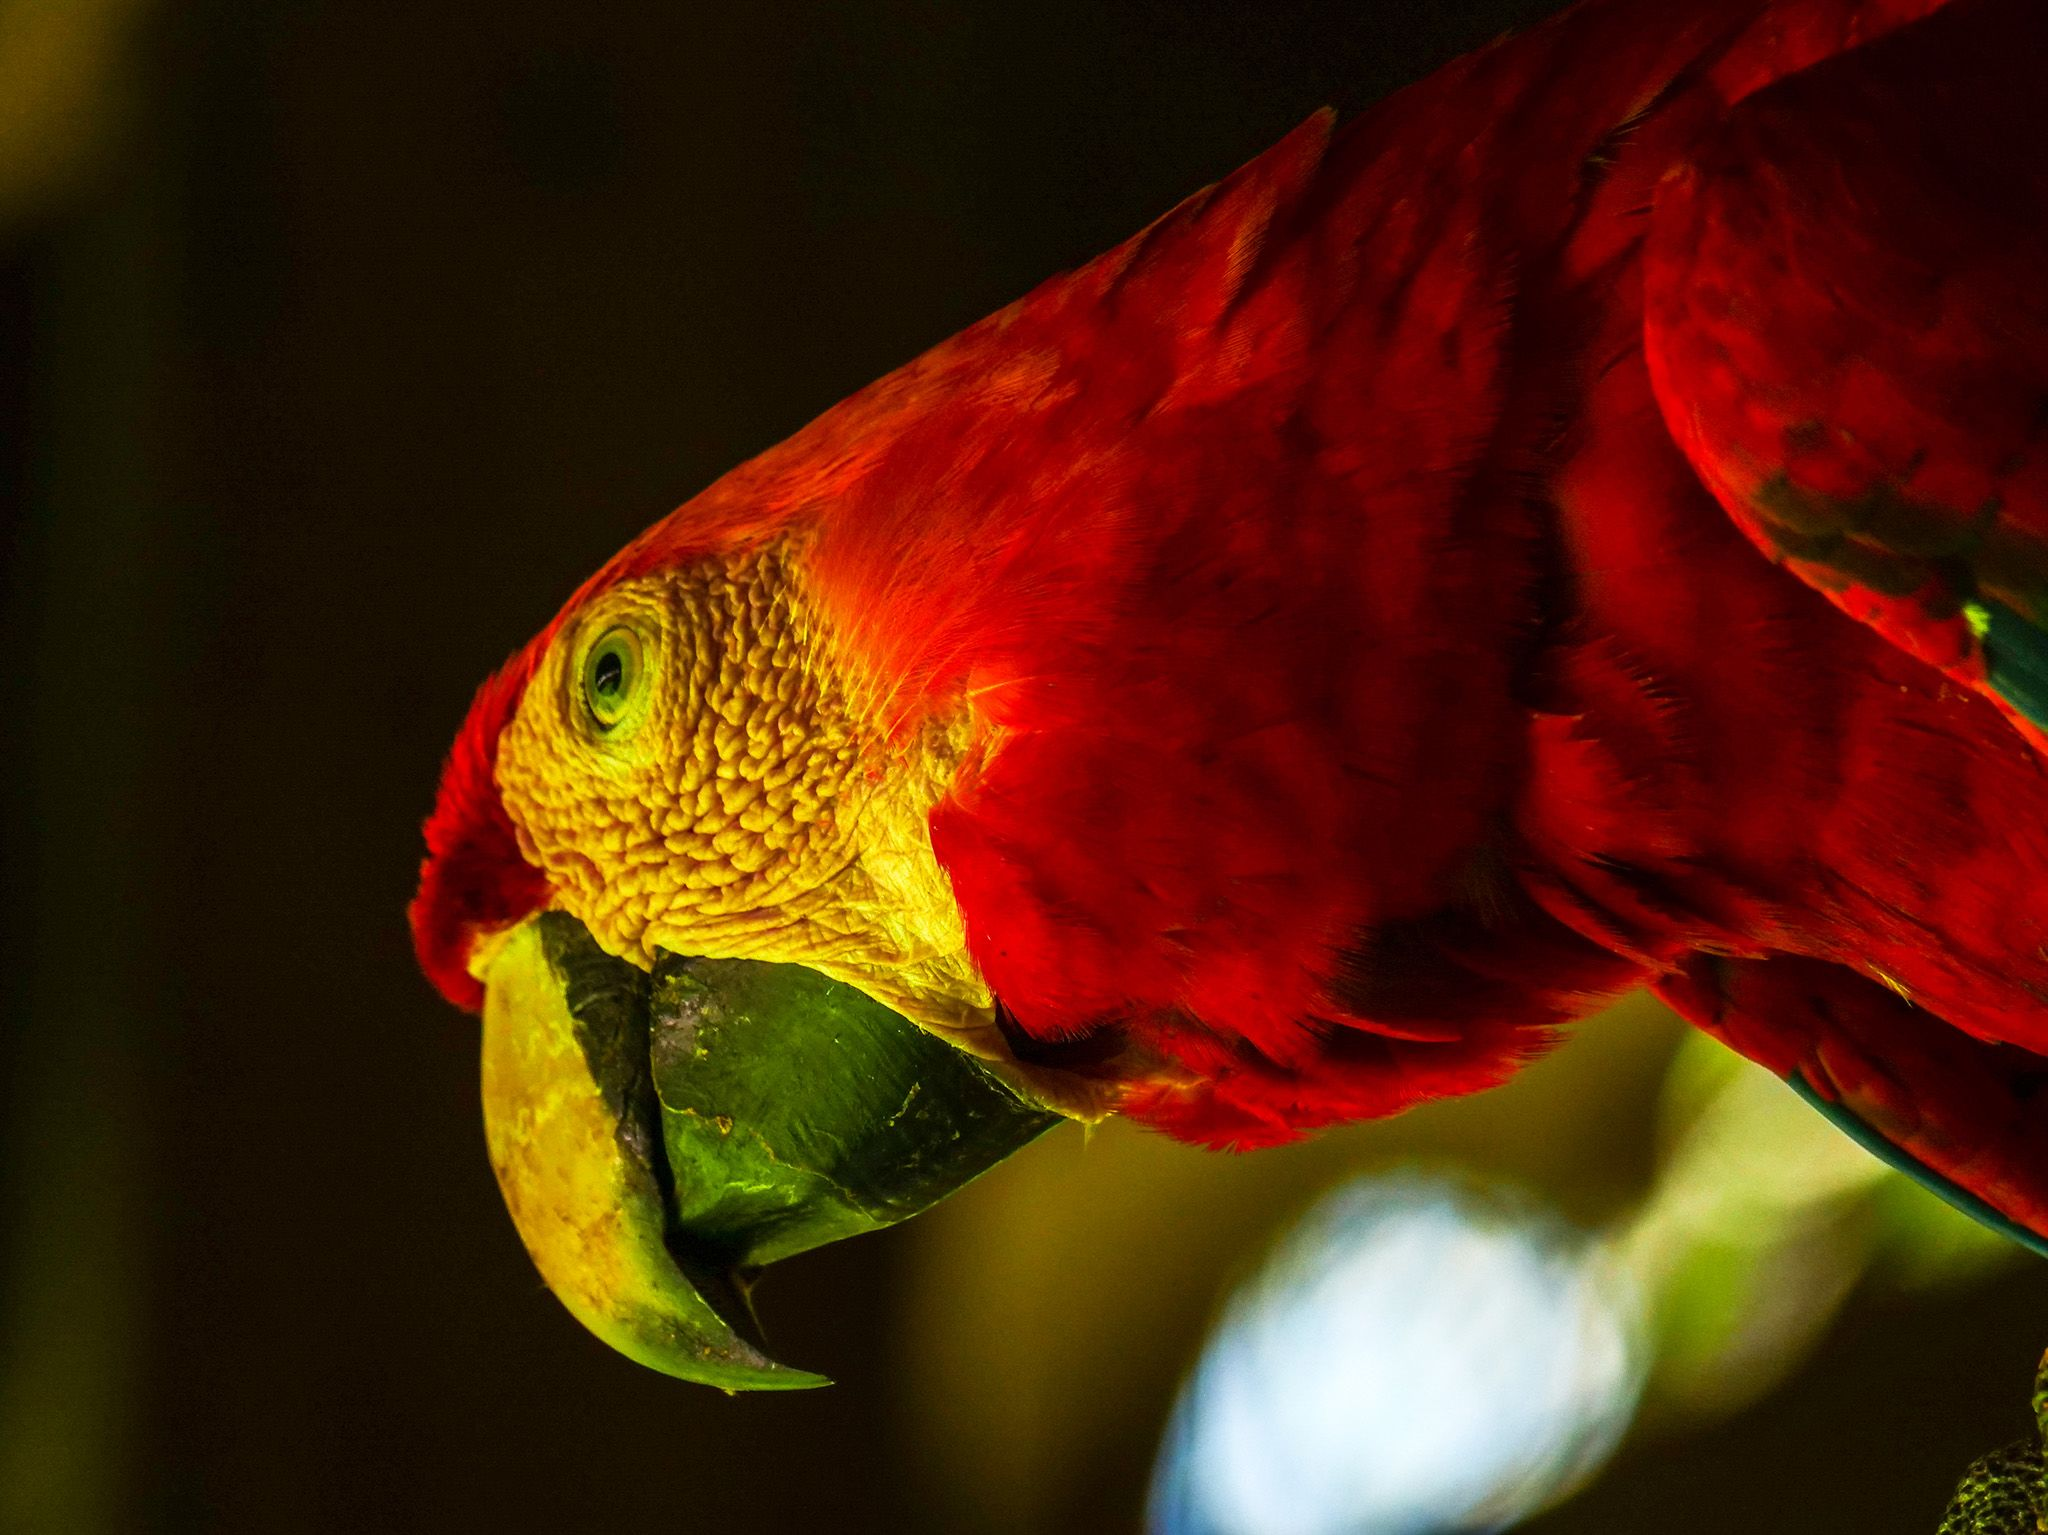 Tambopata, Madre De Dios, Peru:  A Red and Green Macaw. This image is from Wild Peru: Andes... [Foto del giorno - novembre 2018]